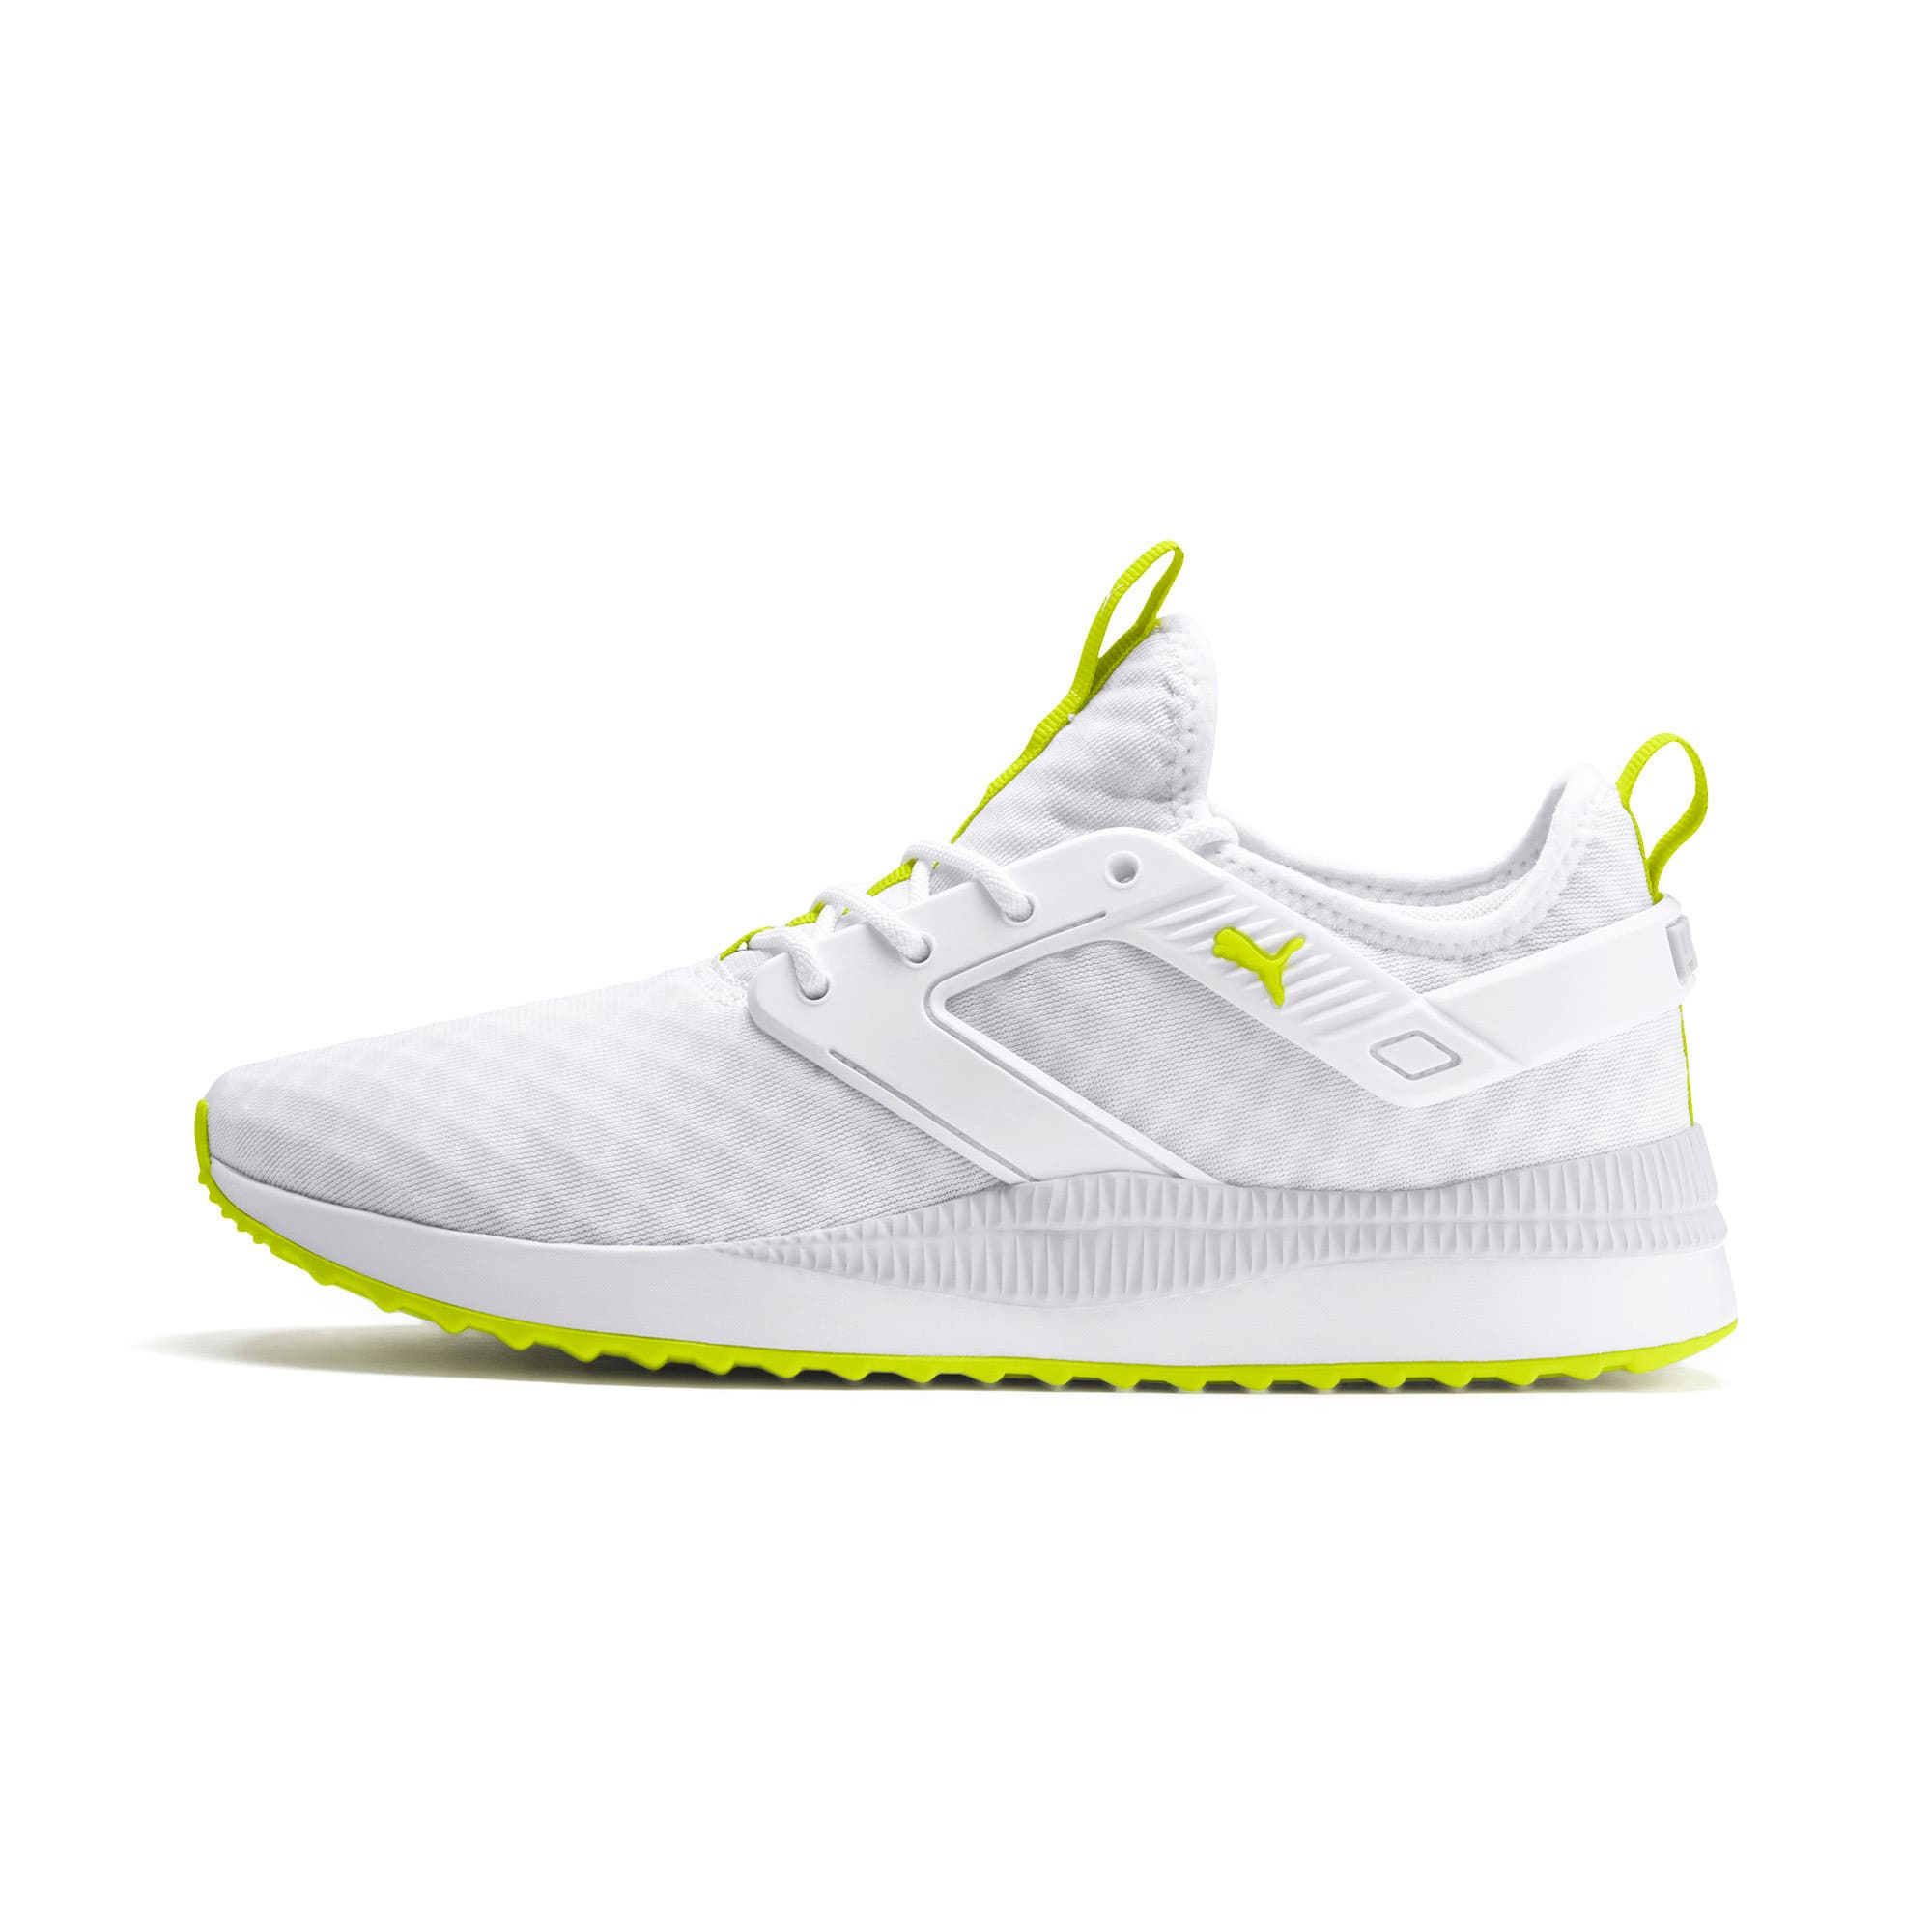 Thumbnail 1 of Pacer Next Excel Laufschuhe, Puma White-Nrgy Yellow, medium